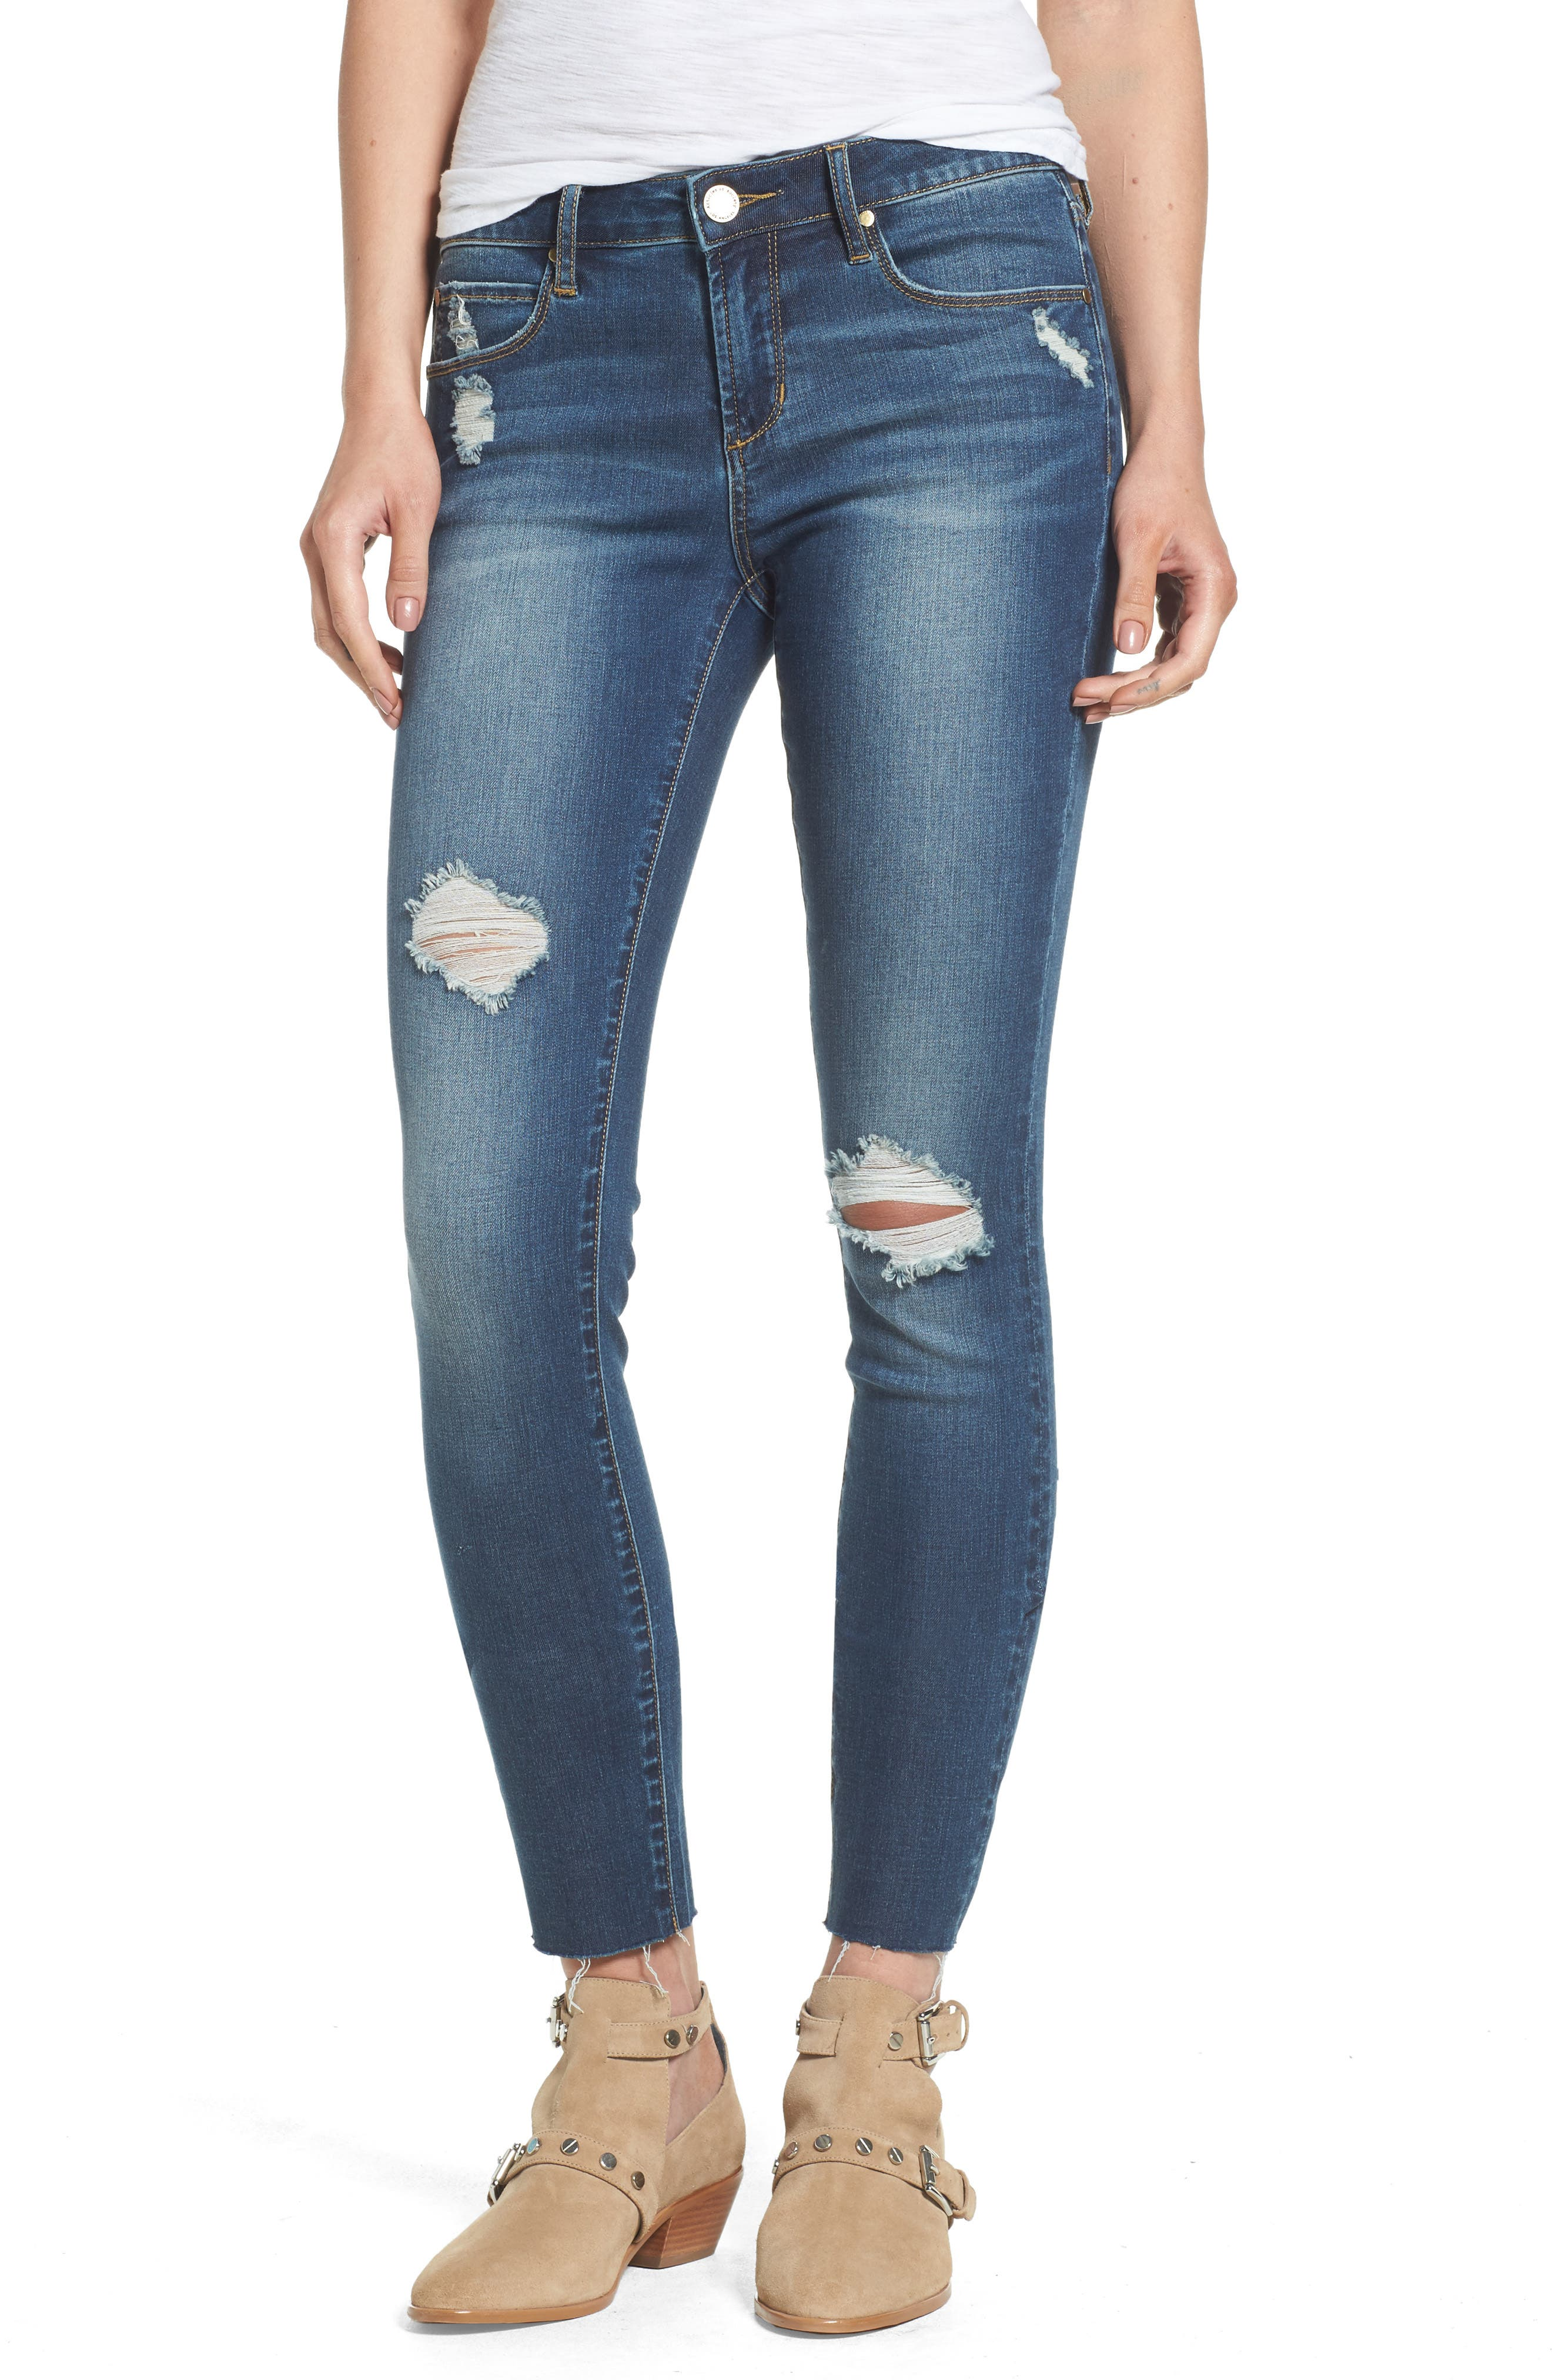 Denim skinny jeans for juniors